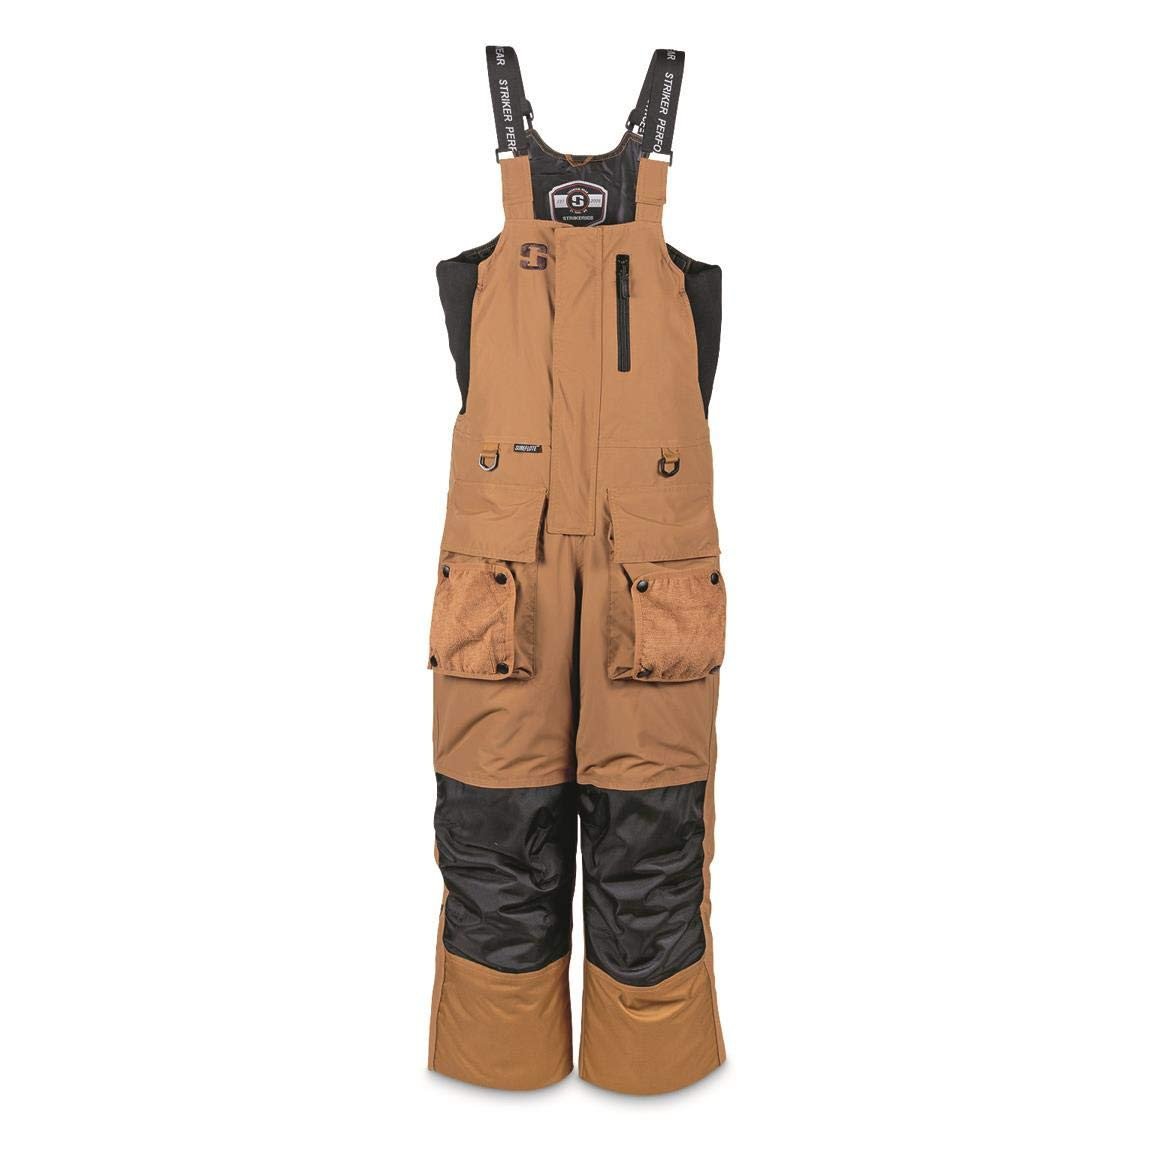 Striker Ice PANTS メンズ B075V9RYJ8 Medium|ブラウン ブラウン Medium